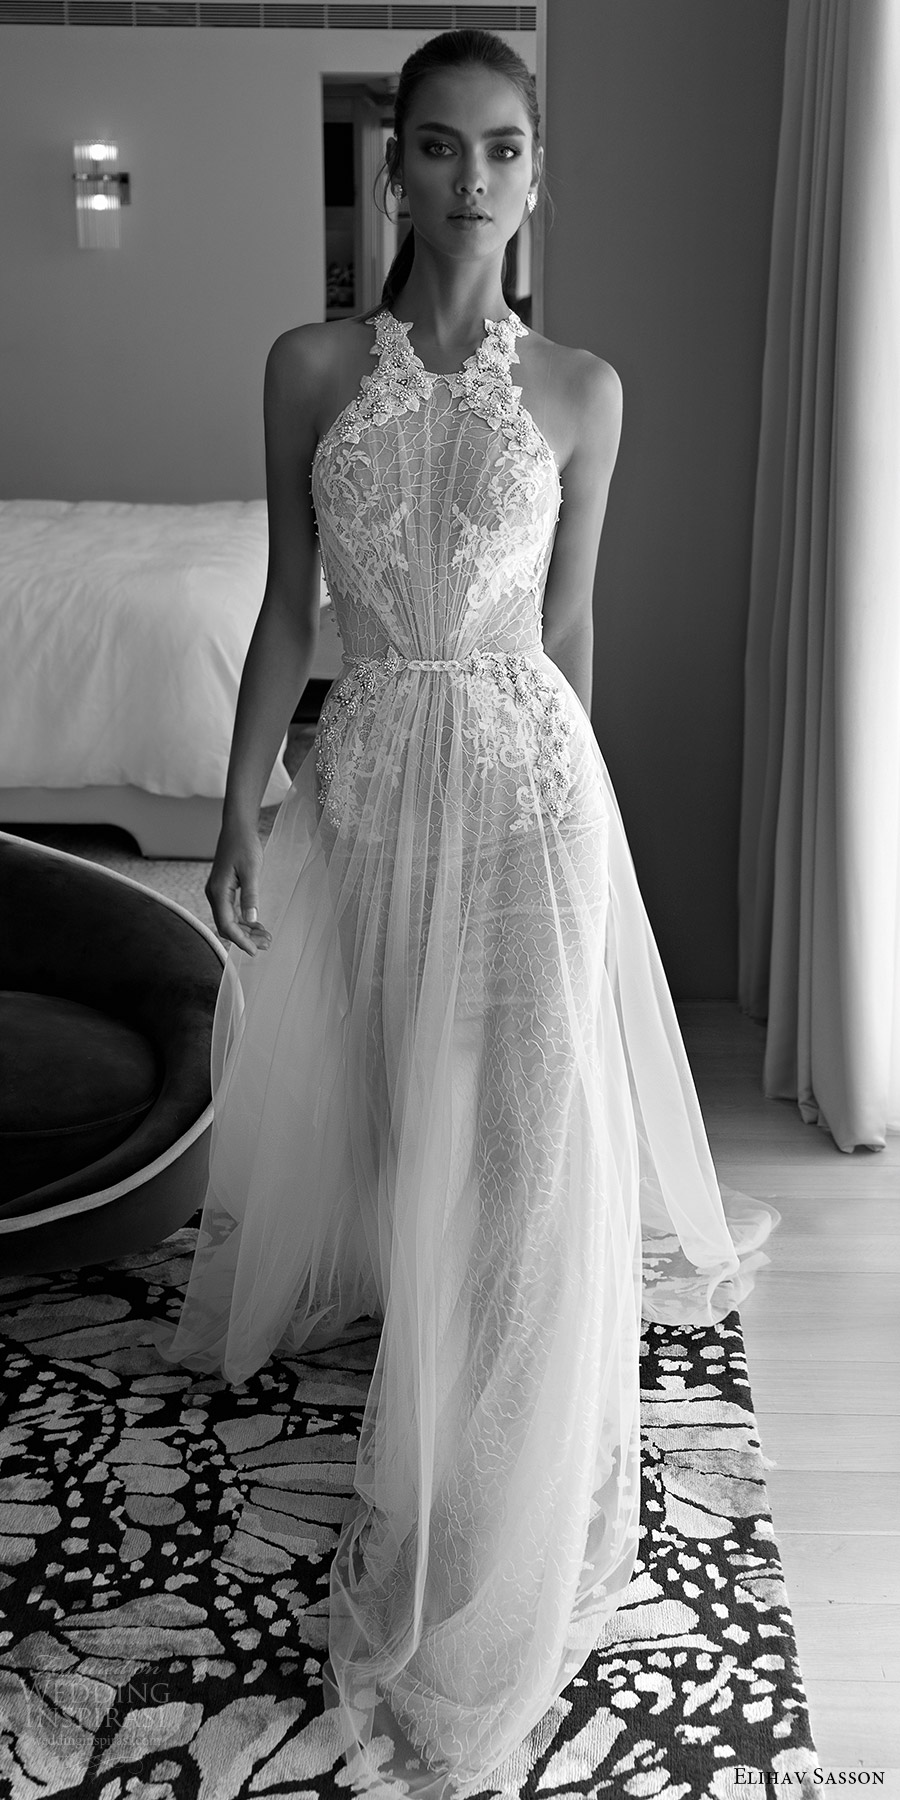 elihav sasson spring 2018 halter embellished ruched bodice lace sheath a line wedding dress (vj 016) mv sheer back glam